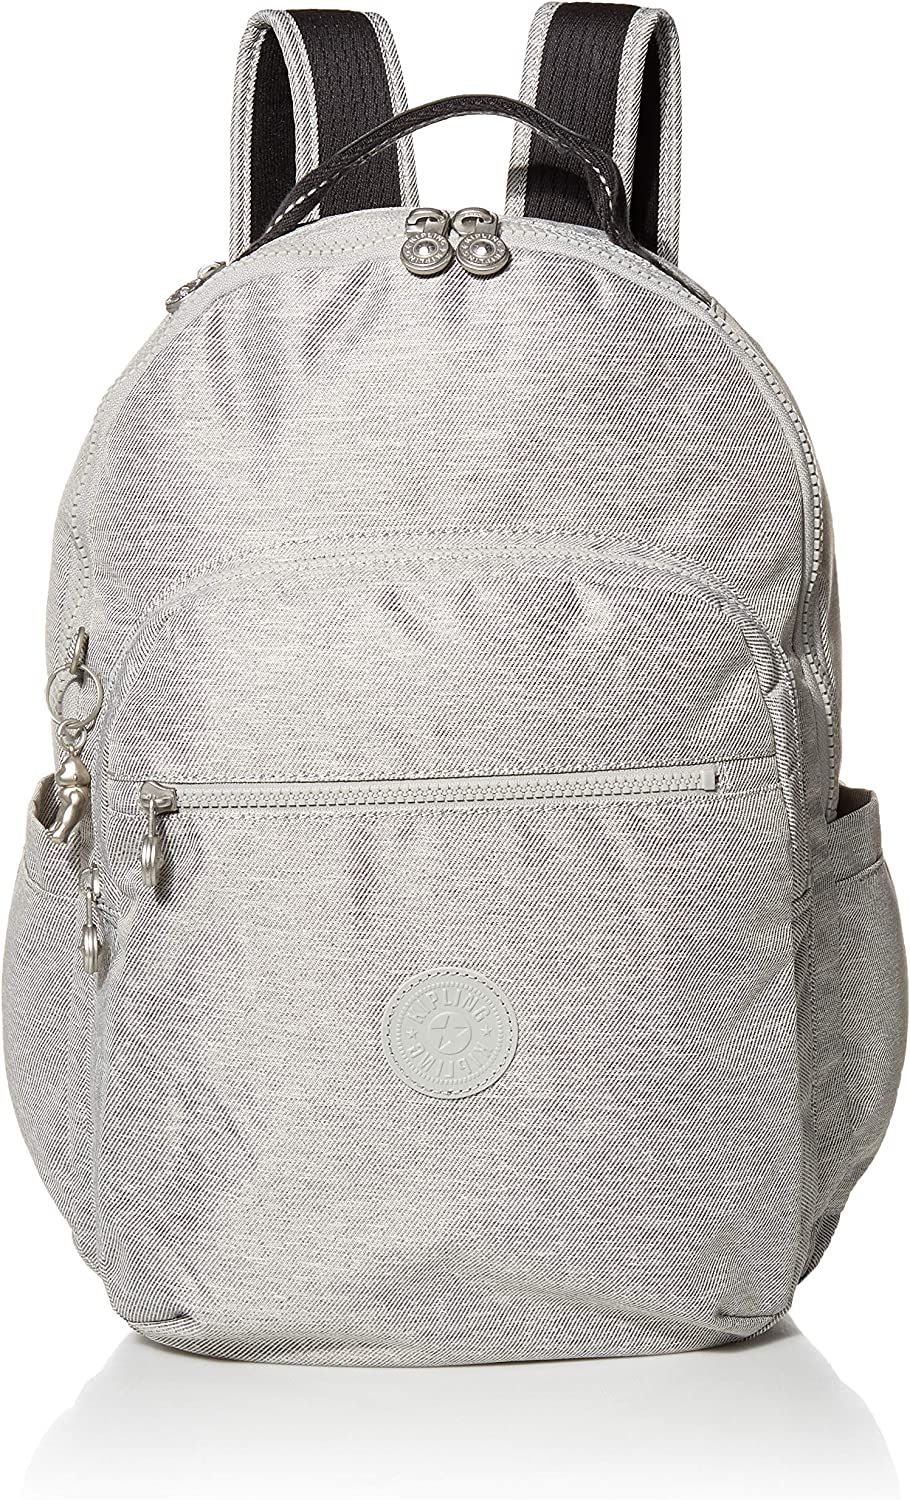 Kipling Seoul Go Laptop, Padded, Adjustable Backpack Straps, Zip Closure Seoul Go - Mochila con correas acolchadas y ajustables, cierre de cremallera Mujer (Pack de 1)